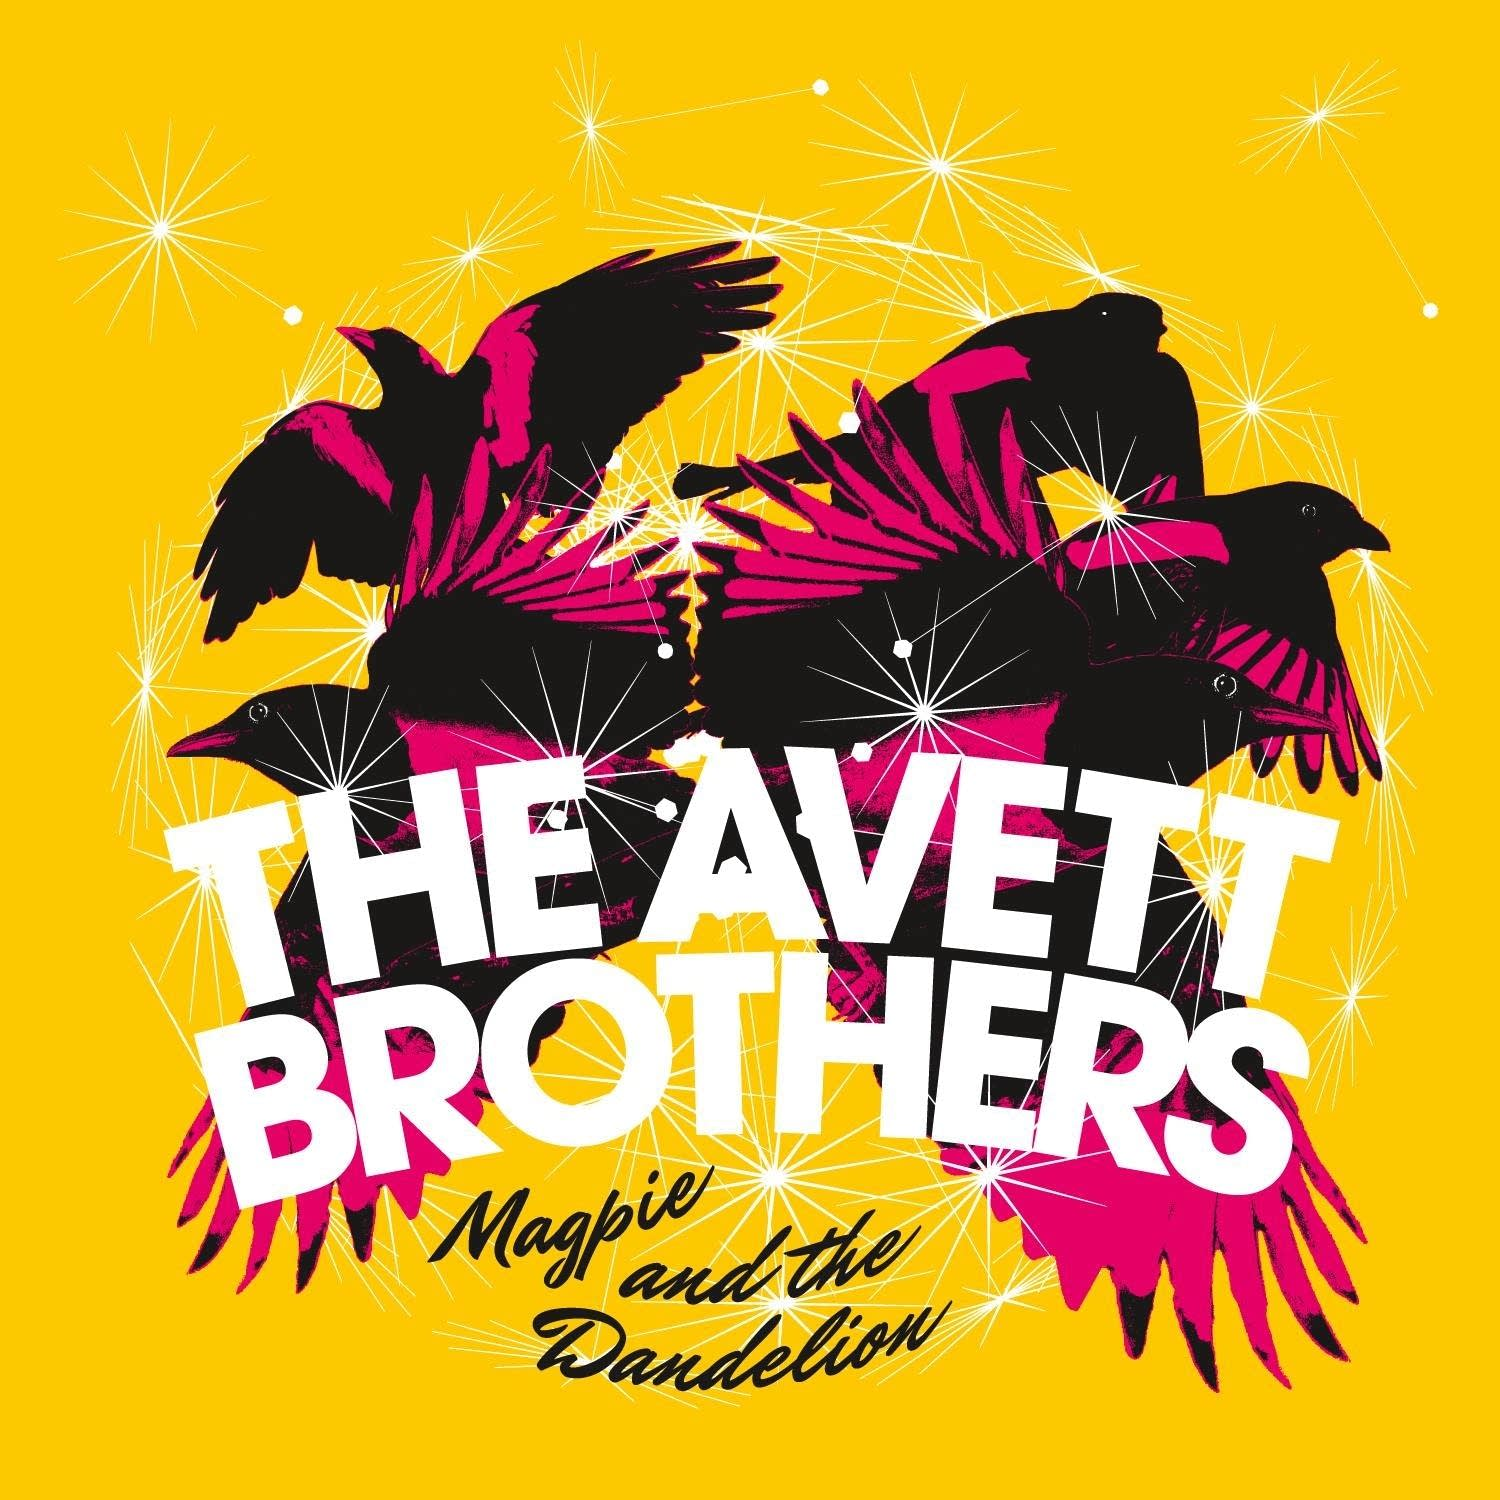 magpie and the dandelion, avett brothers